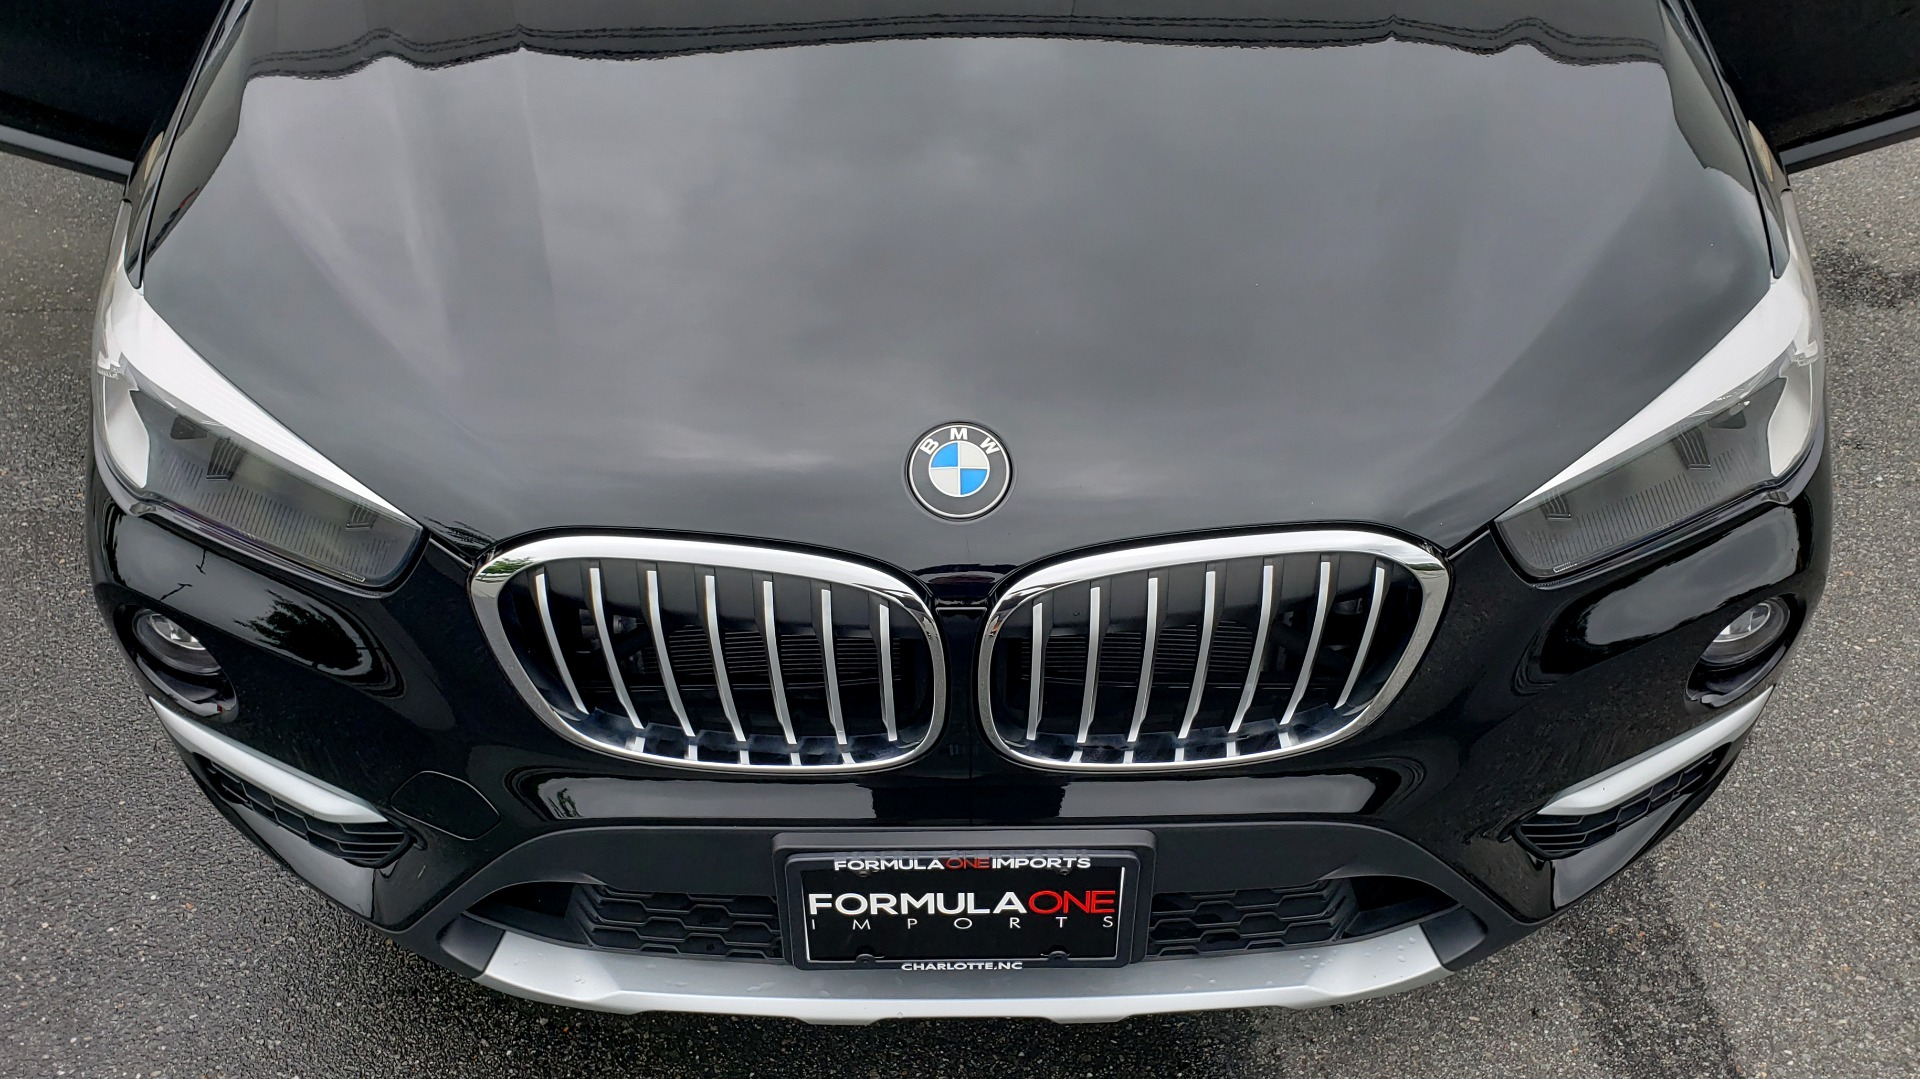 Used 2018 BMW X1 XDRIVE28I / CONV PKG / NAV / HTD STS / PANO-ROOF / REARVIEW for sale $30,995 at Formula Imports in Charlotte NC 28227 26